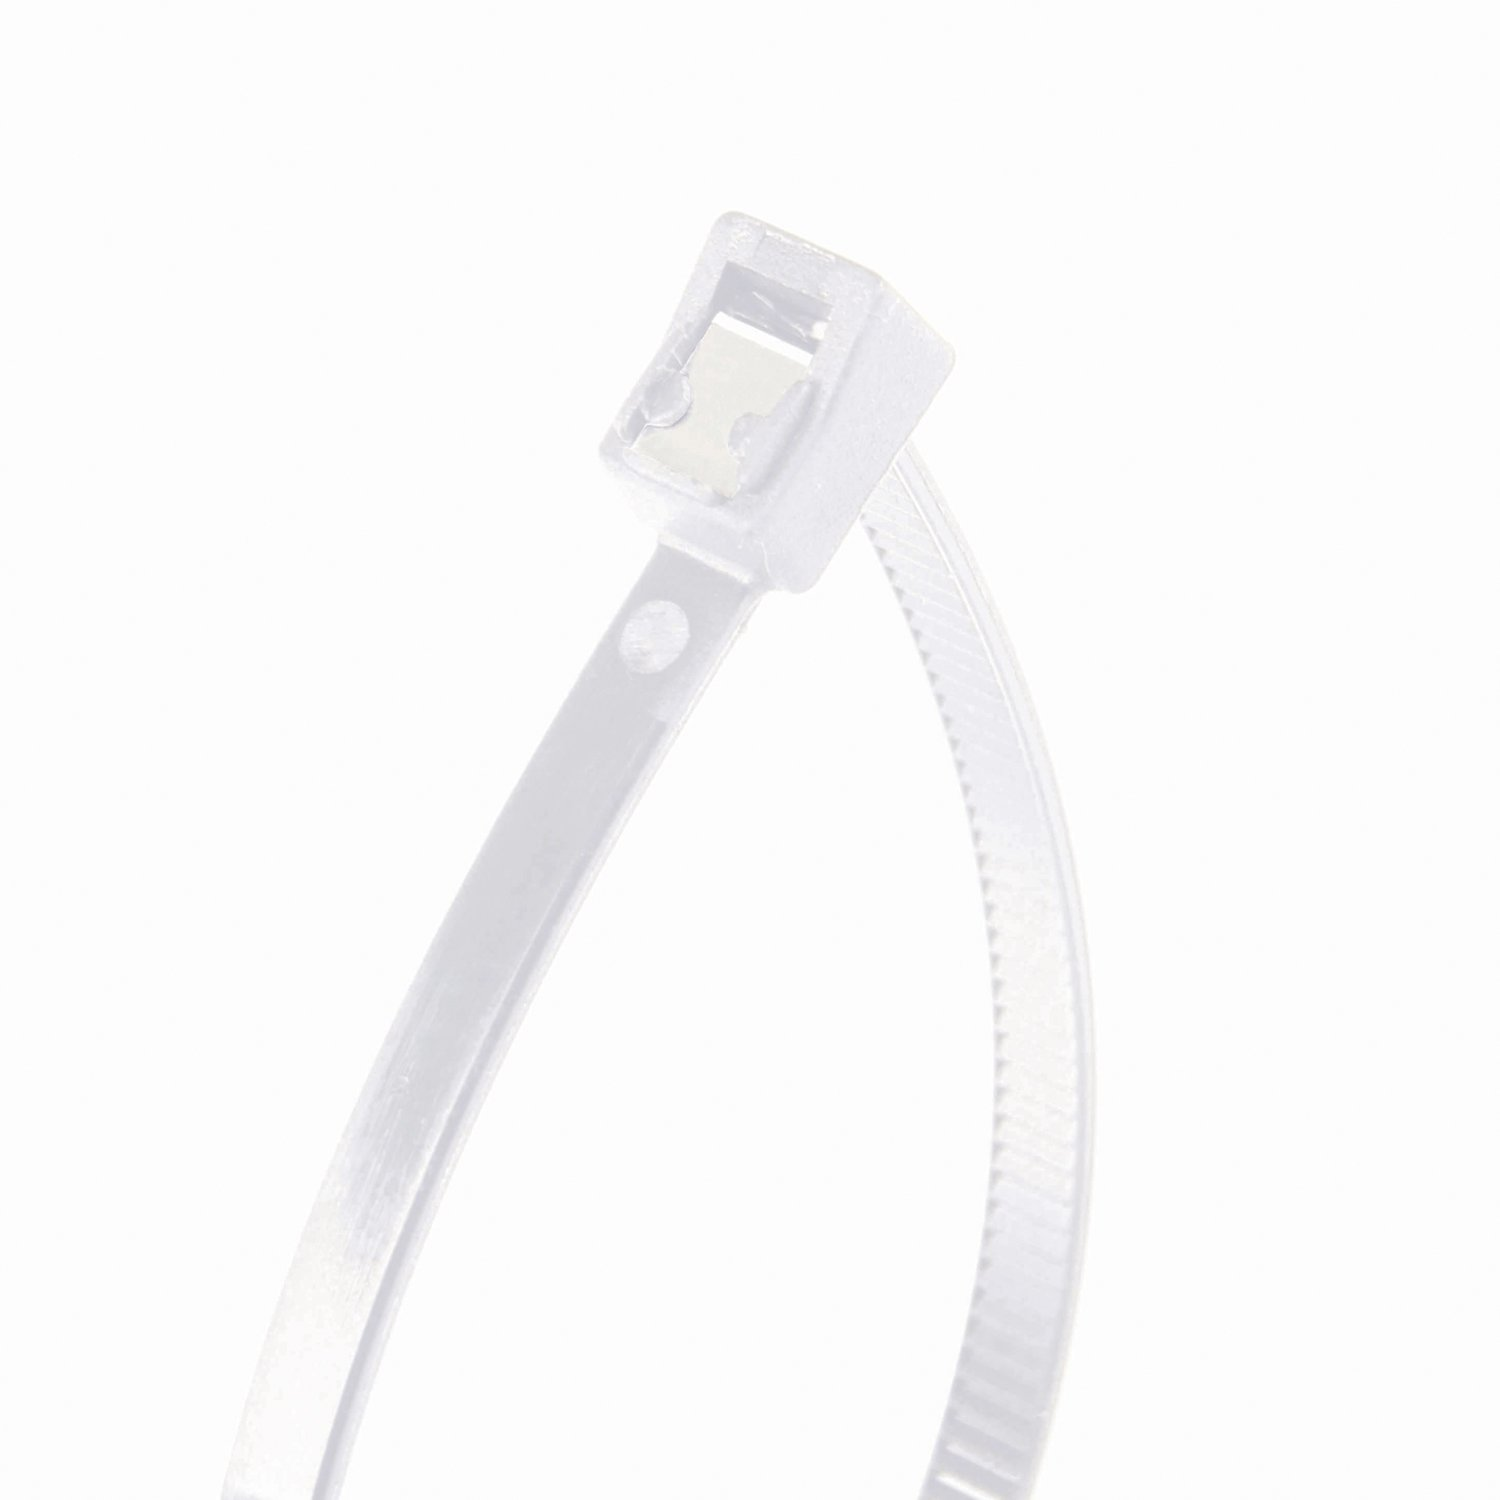 Tensile 50 lb 50 Pk. 11 inch Gardner Bender 46-311SC Nylon Self-Cutting Cable Tie Natural White GB Electrical Zip Tie Twist-Off Tail